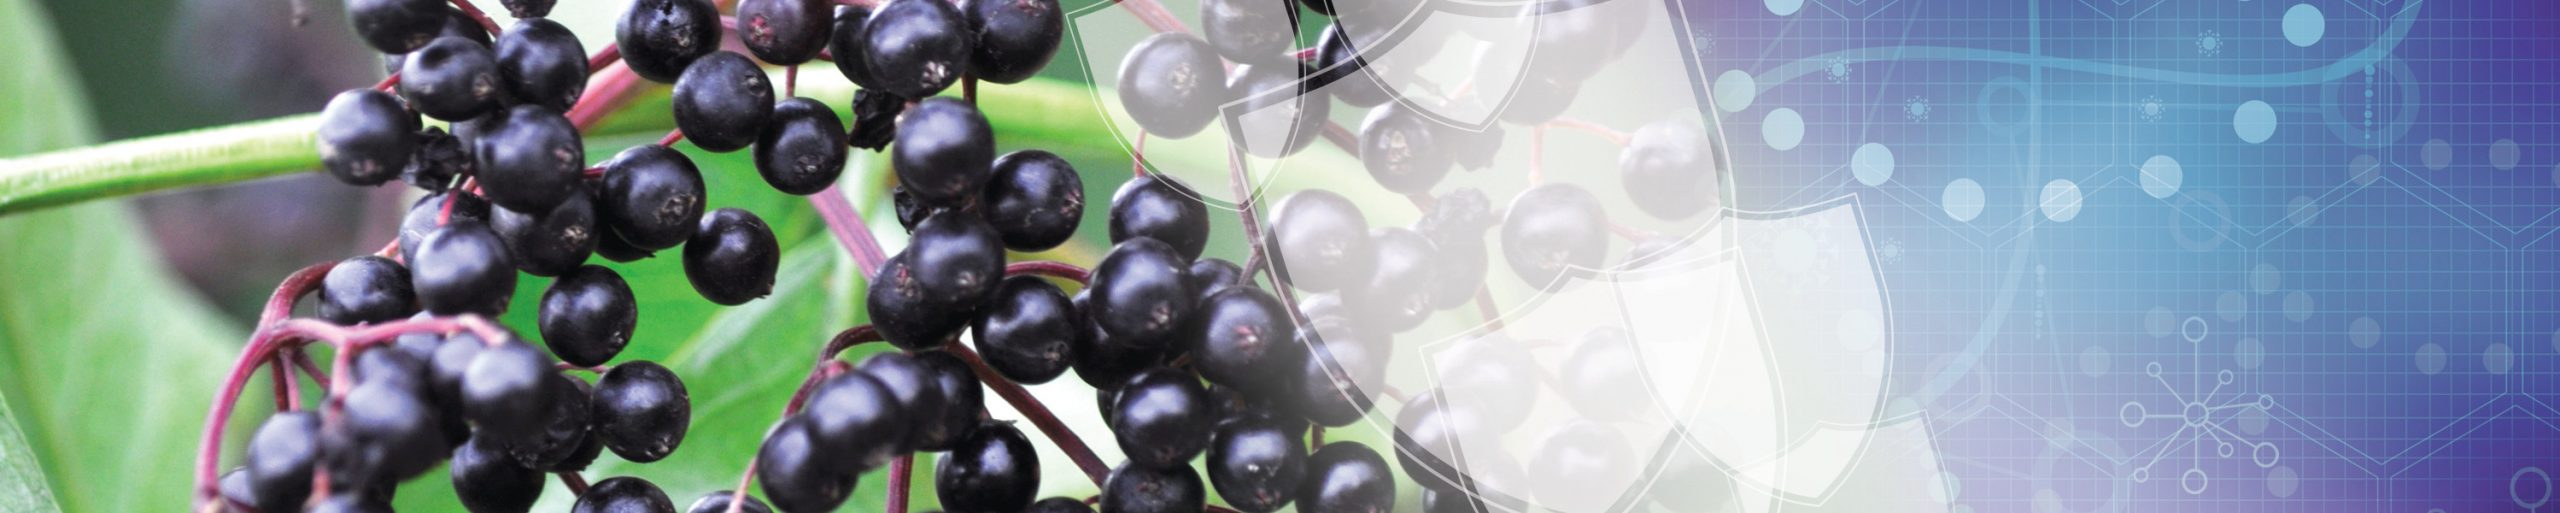 Choosing the Best Quality Immune-Boosting Elderberry Ingredient (Infographic)